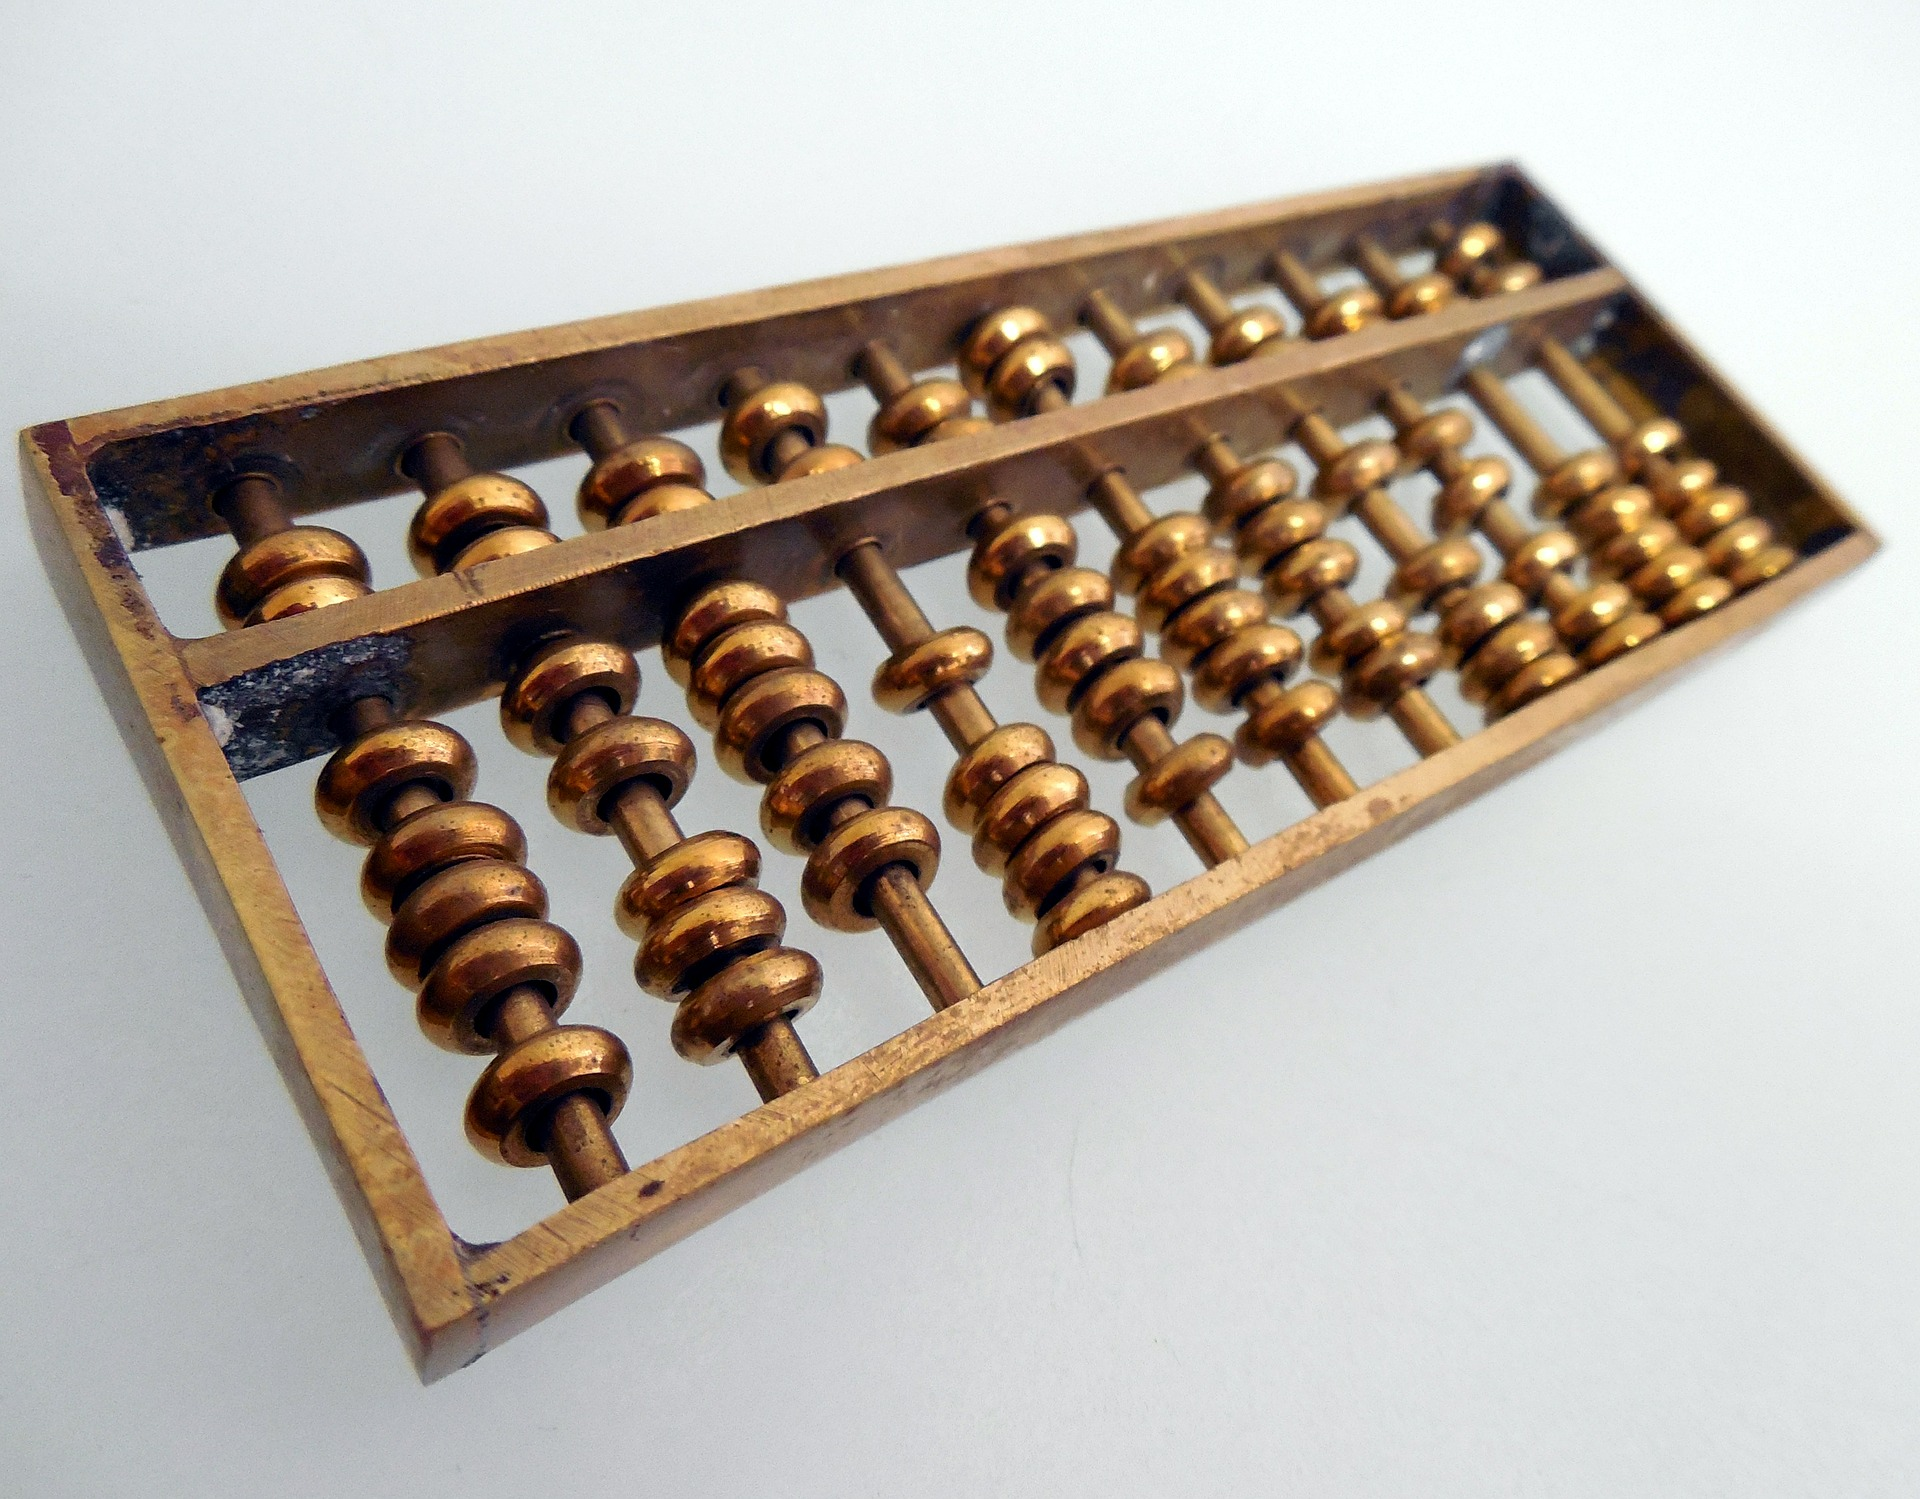 abacus-485704_1920